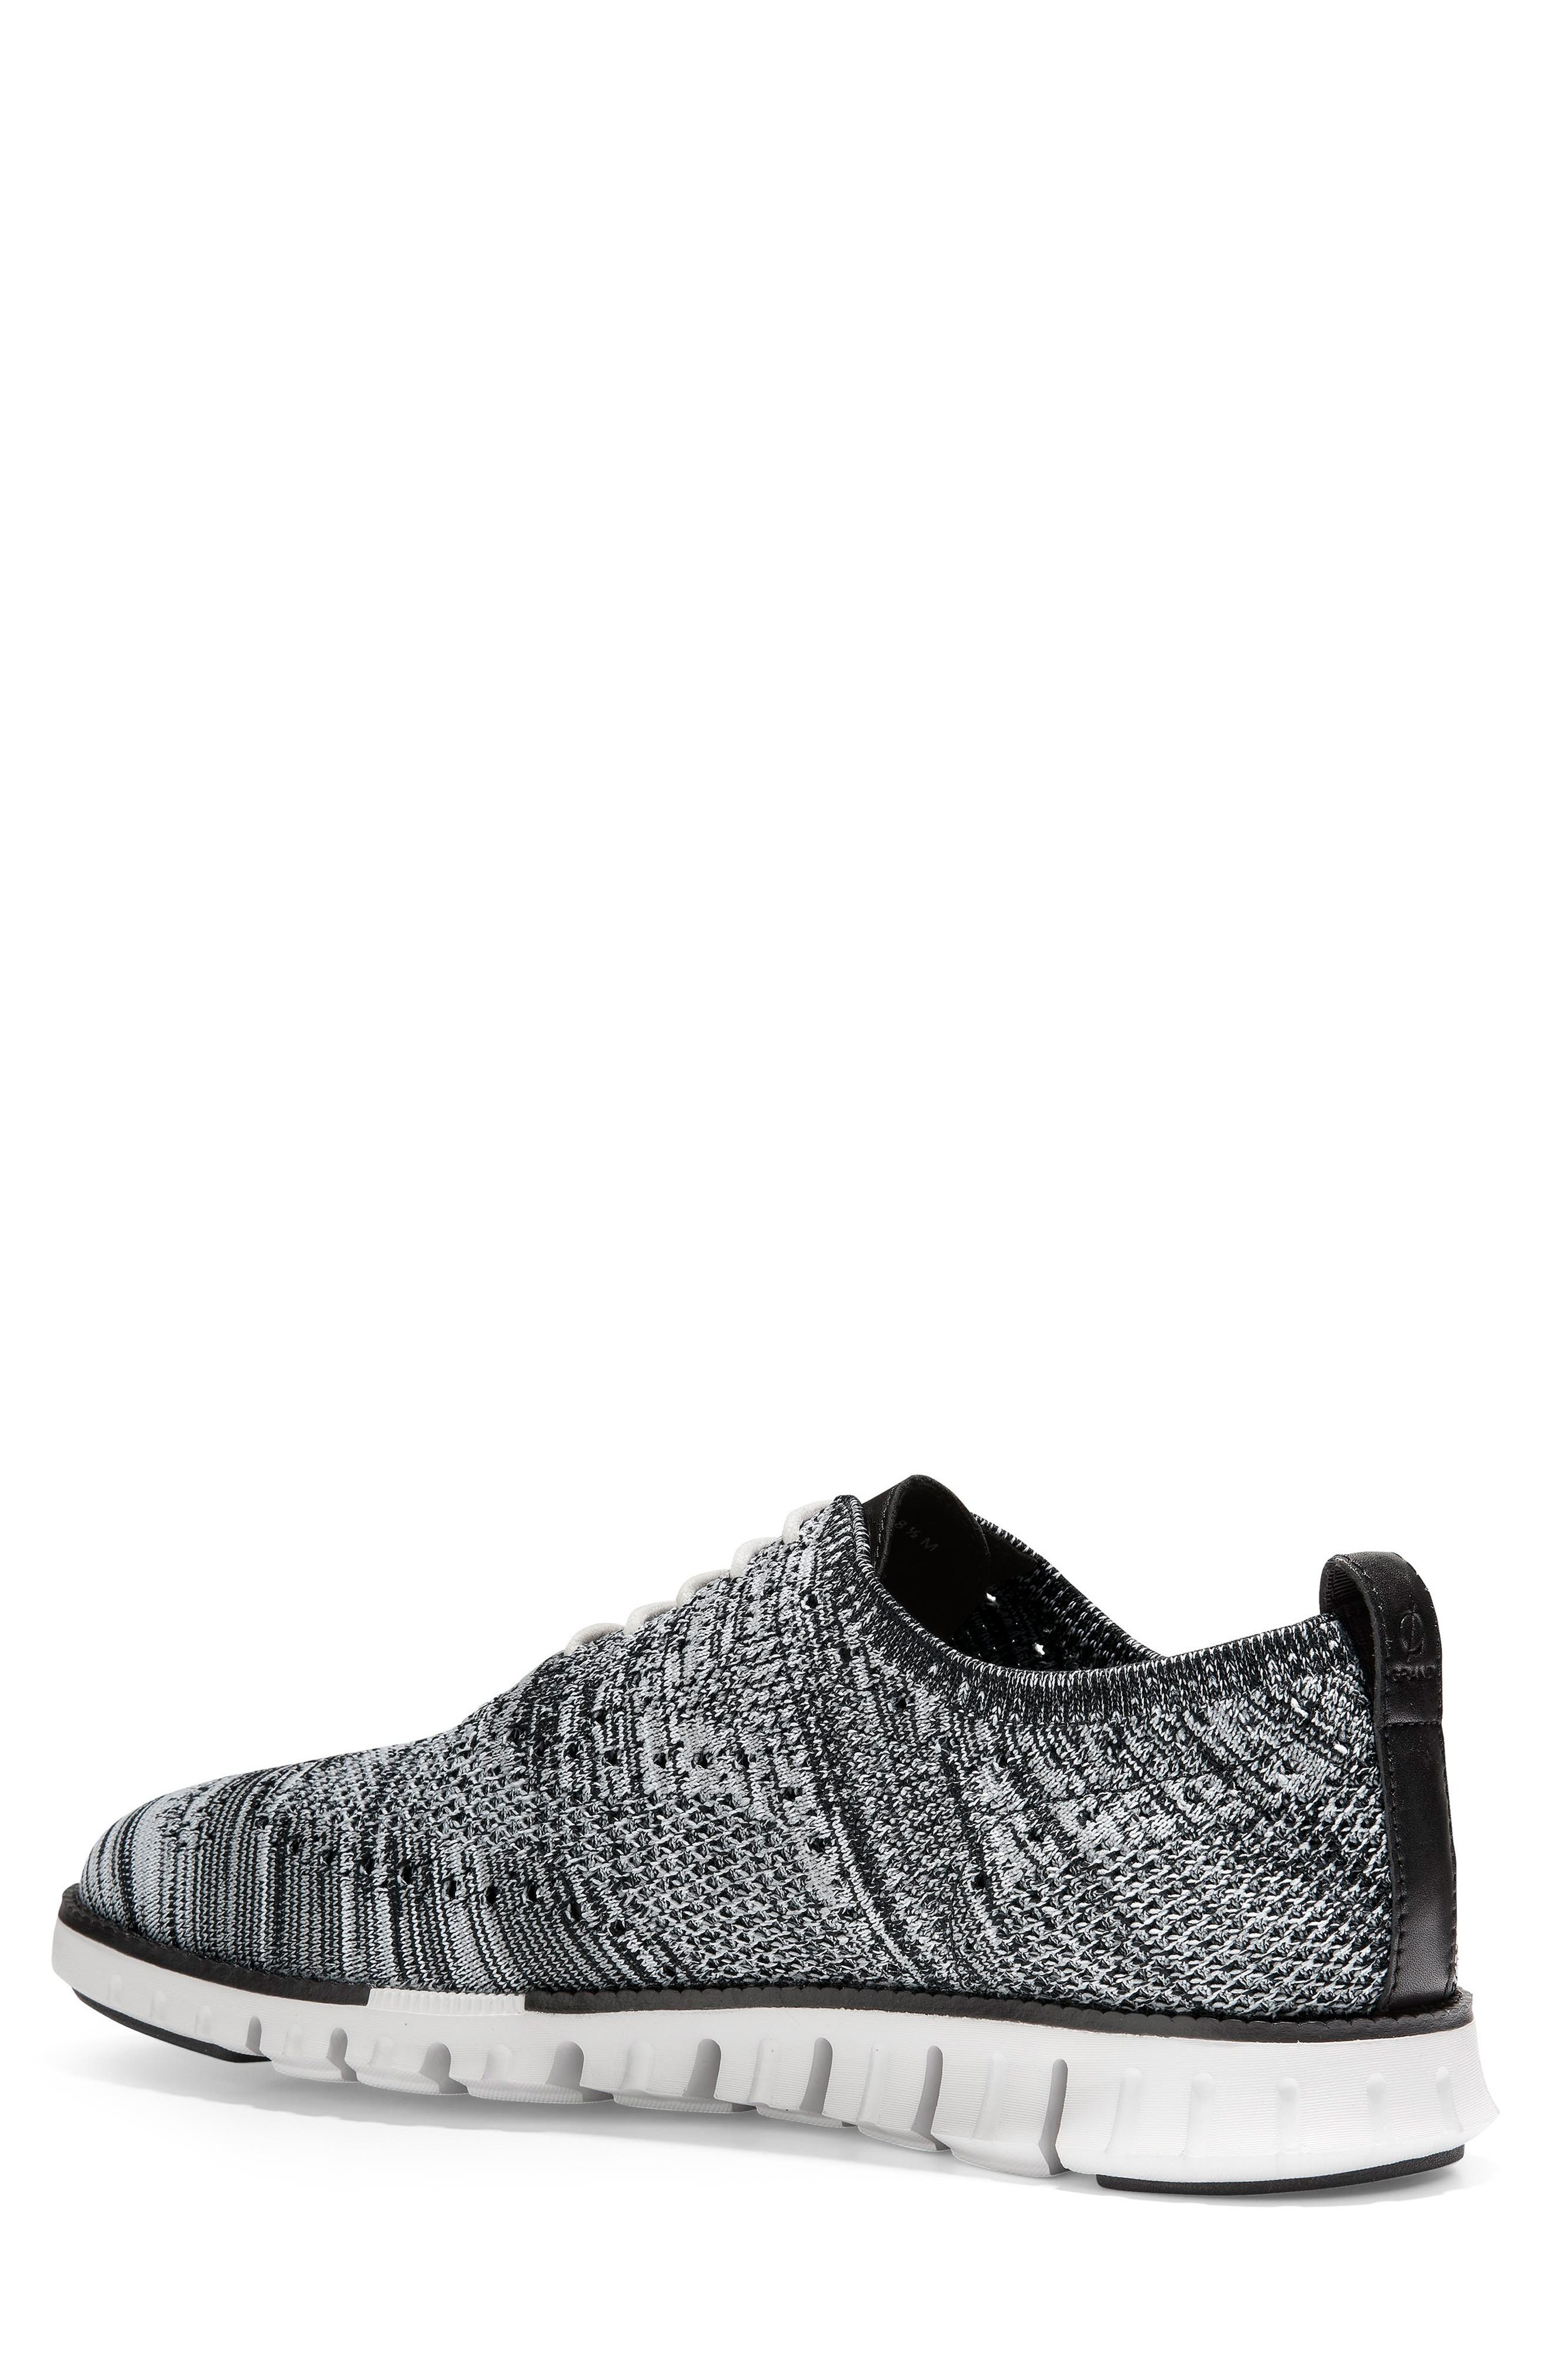 COLE HAAN, ZeroGrand Stitchlite Oxford, Alternate thumbnail 2, color, BLACK/ OPTIC WHITE/ SLEET KNIT